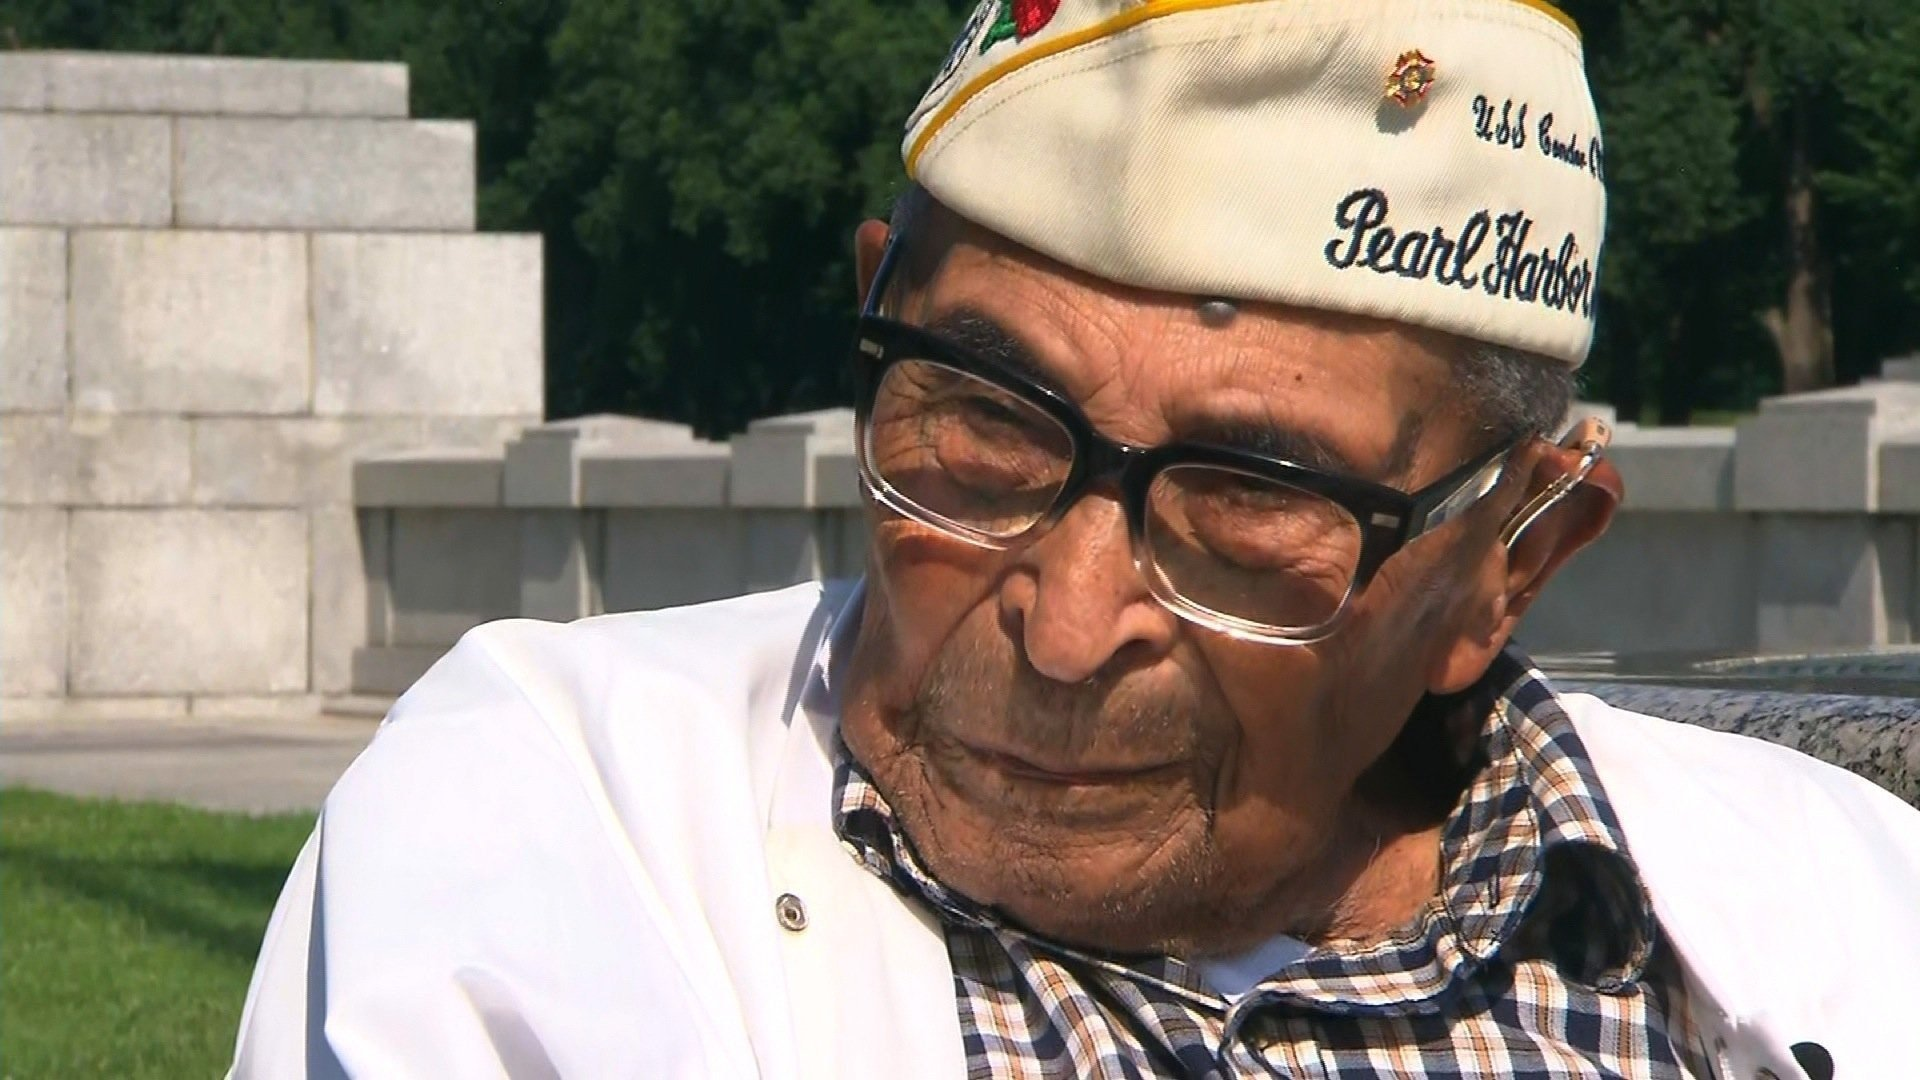 Ray Chavez is the oldest survivor of the attack on Pearl Harbor that launched America's entry into World War II in 1941.